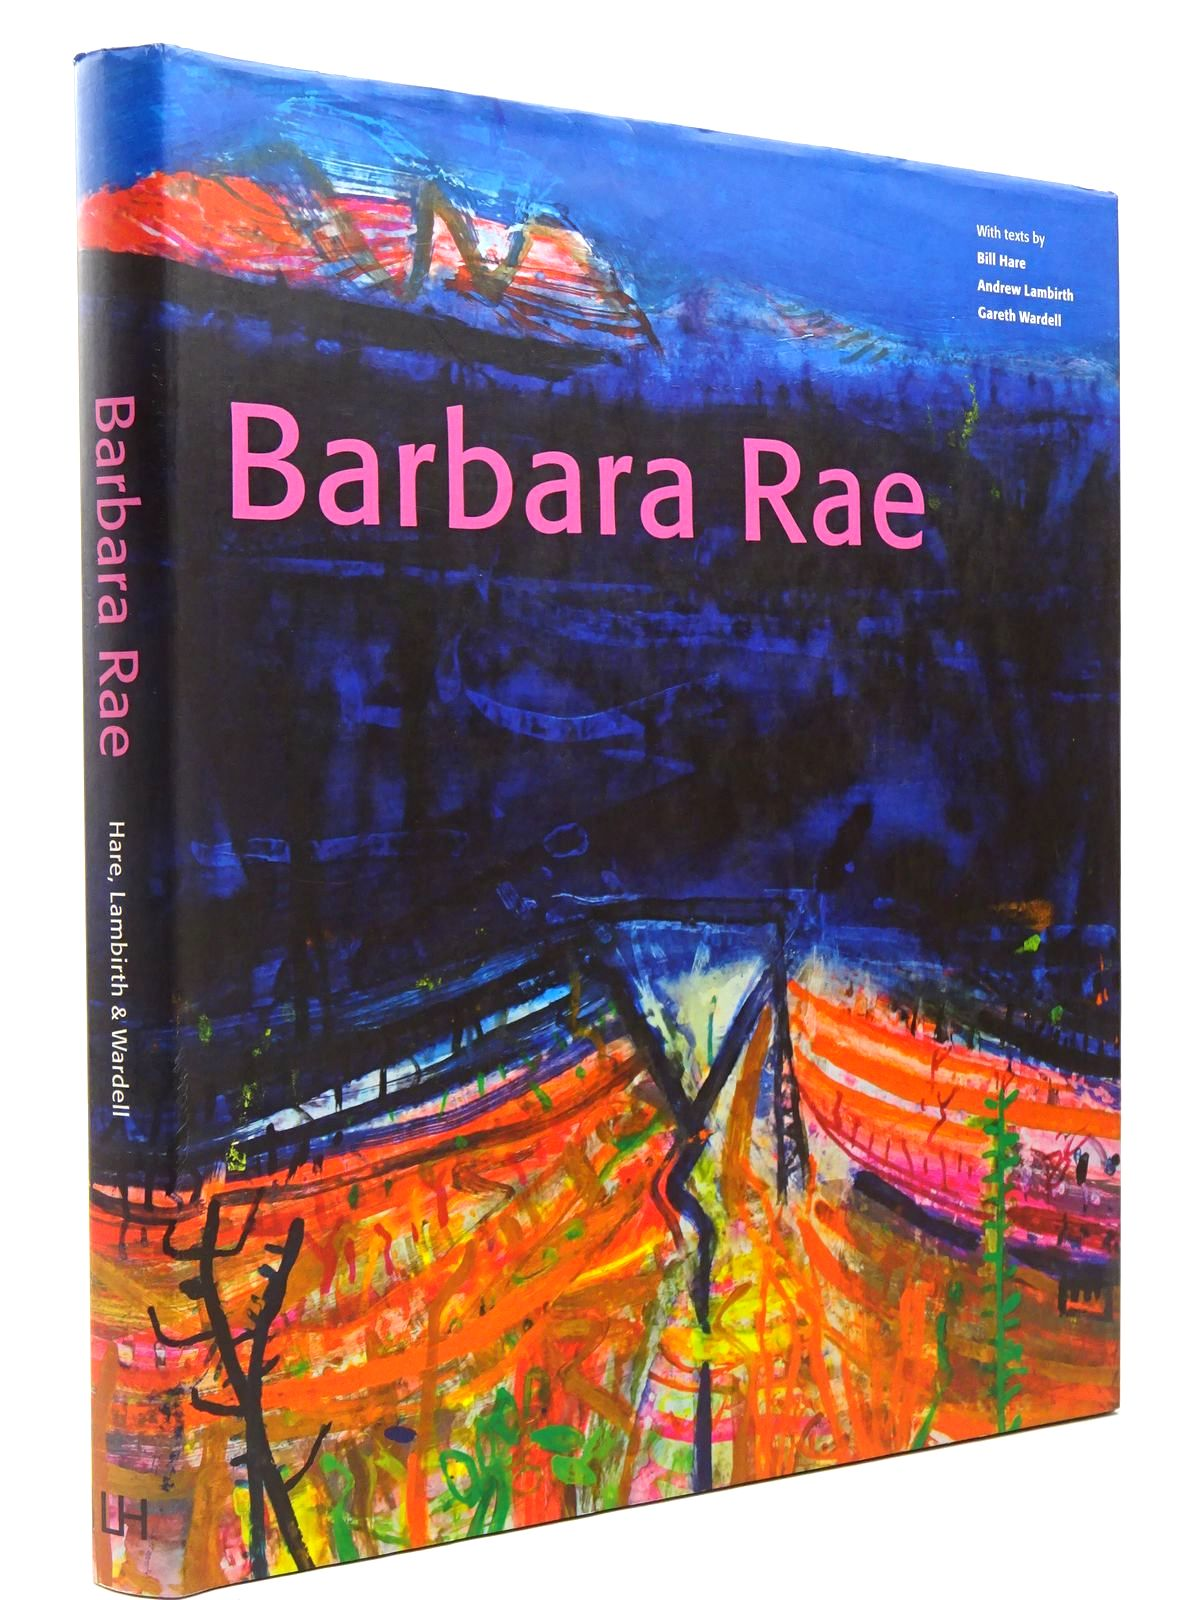 Photo of BARBARA RAE written by Wardell, Gareth<br />Lambirth, Andrew<br />Hare, Bill illustrated by Rae, Barbara published by Lund Humphries (STOCK CODE: 2129600)  for sale by Stella & Rose's Books